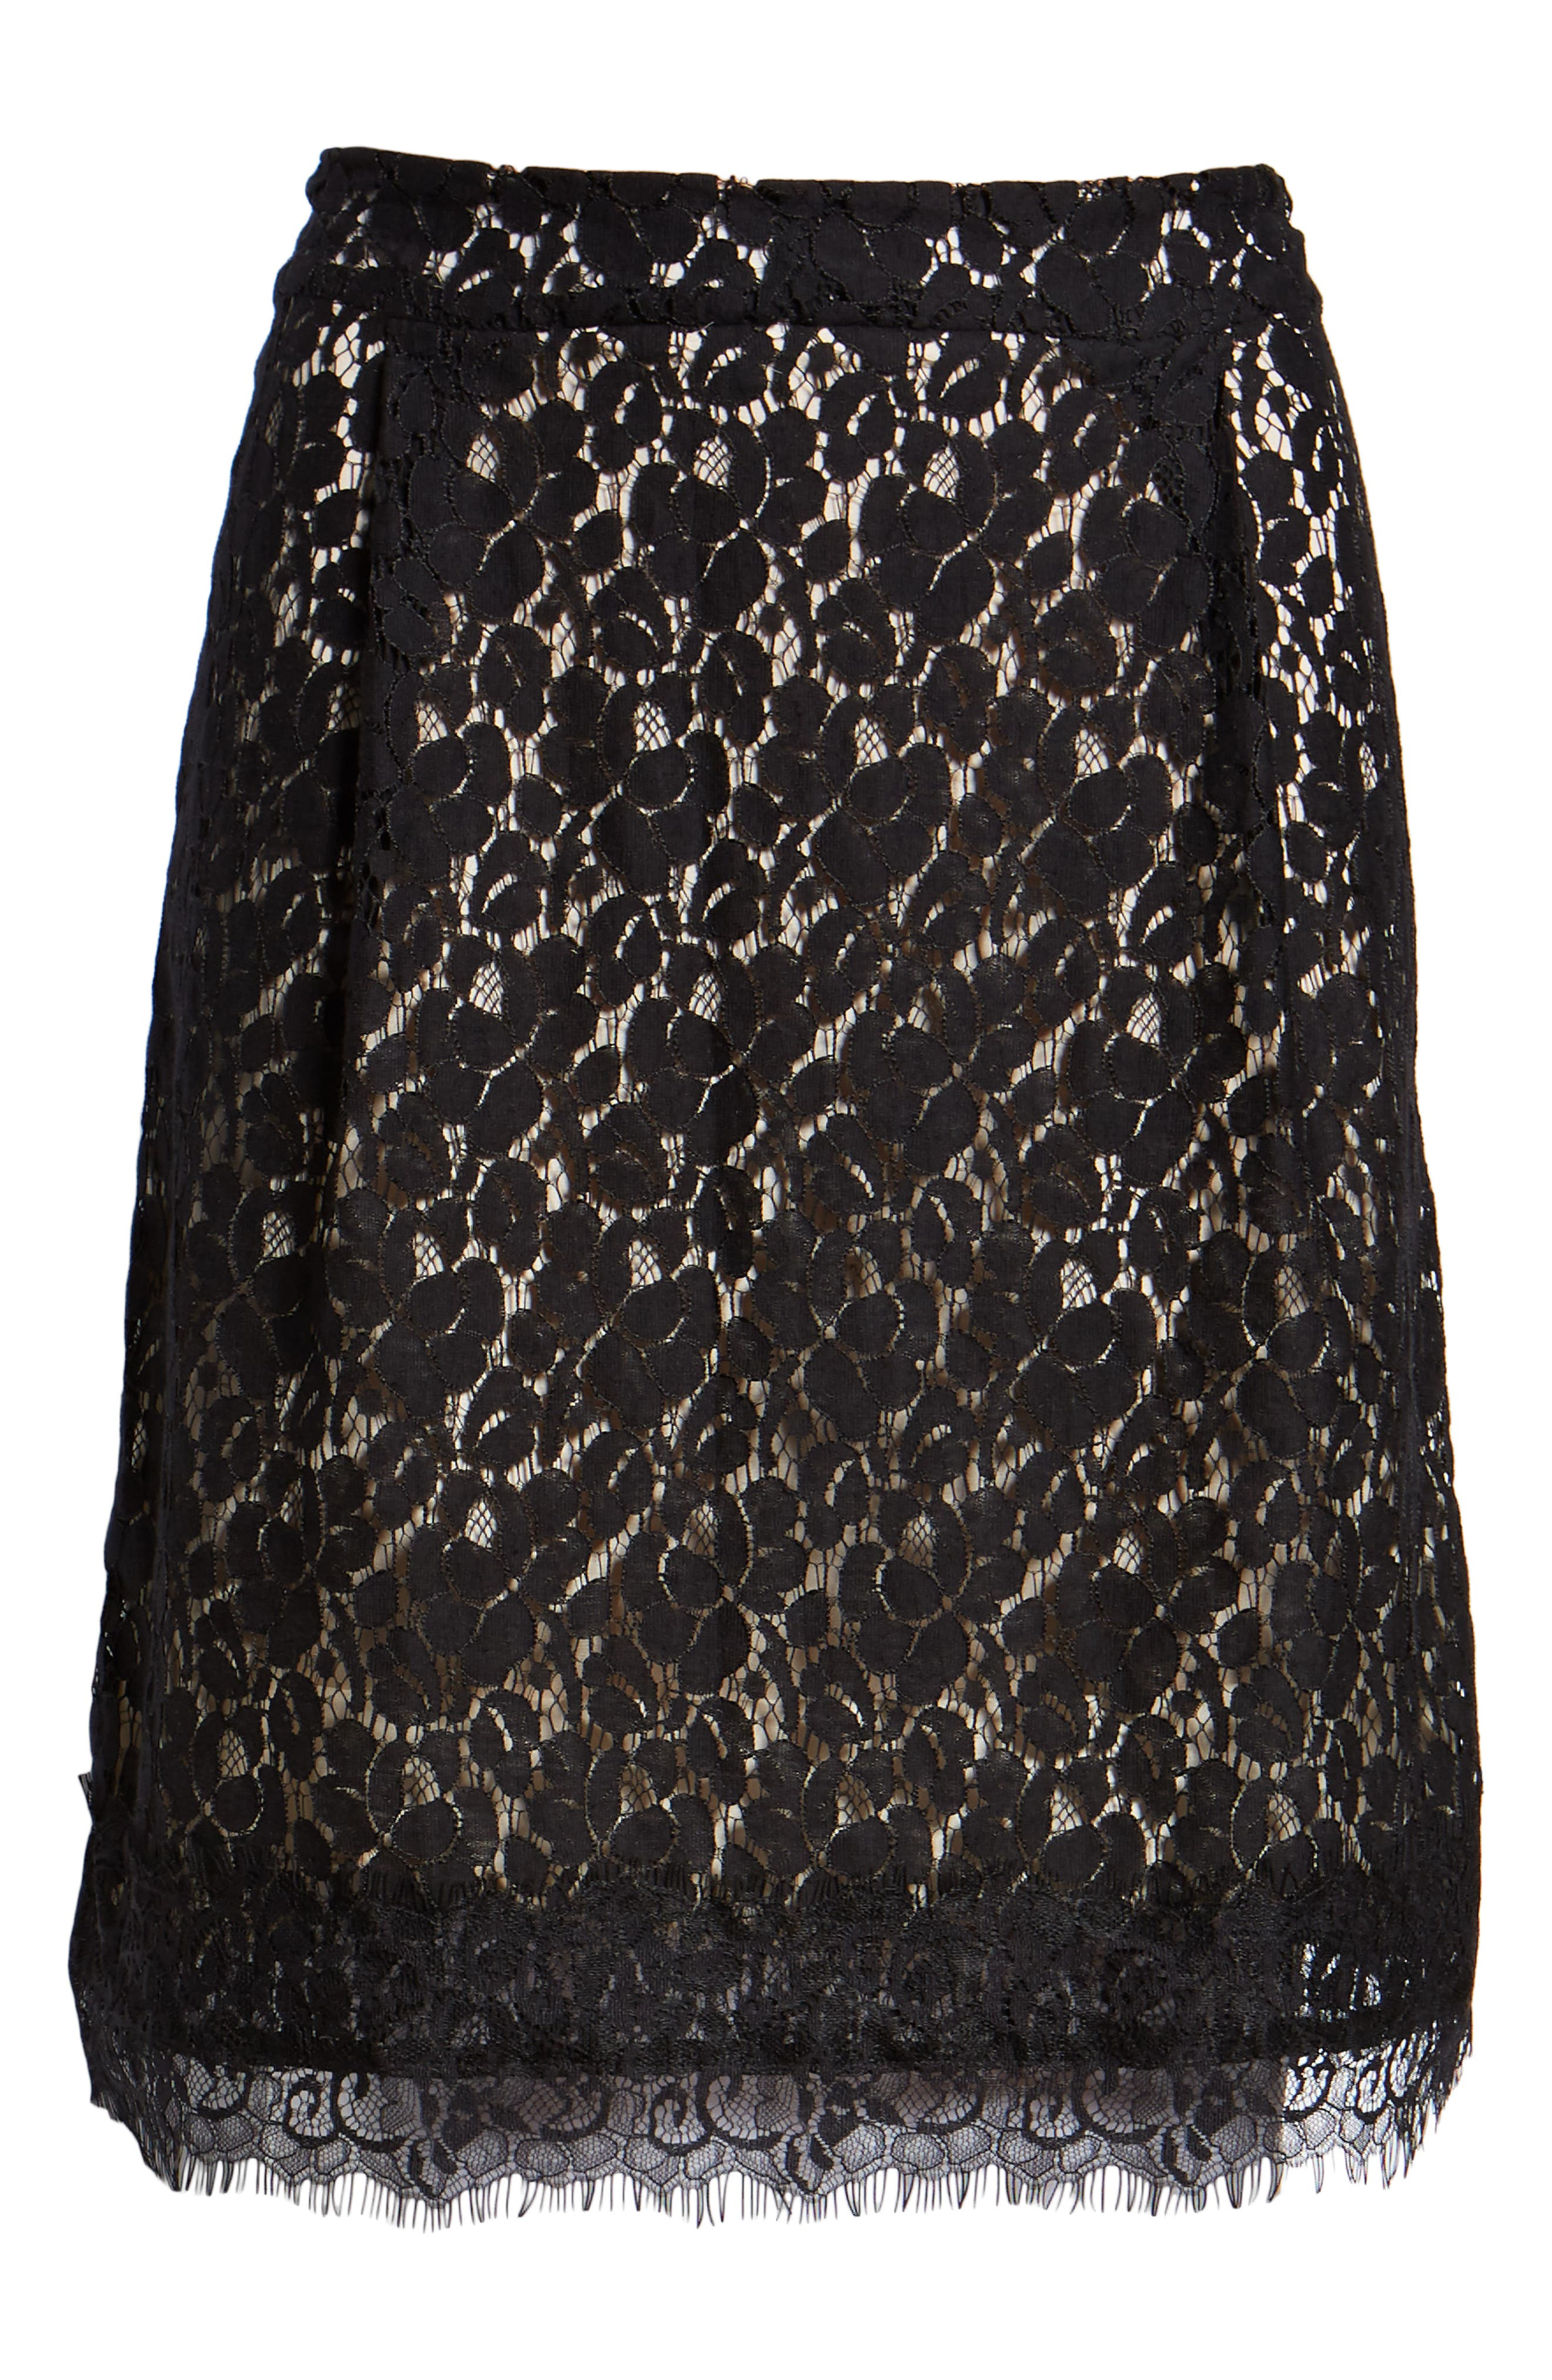 GIBSON,                             x Glam Squad Lace Skirt,                             Alternate thumbnail 7, color,                             017